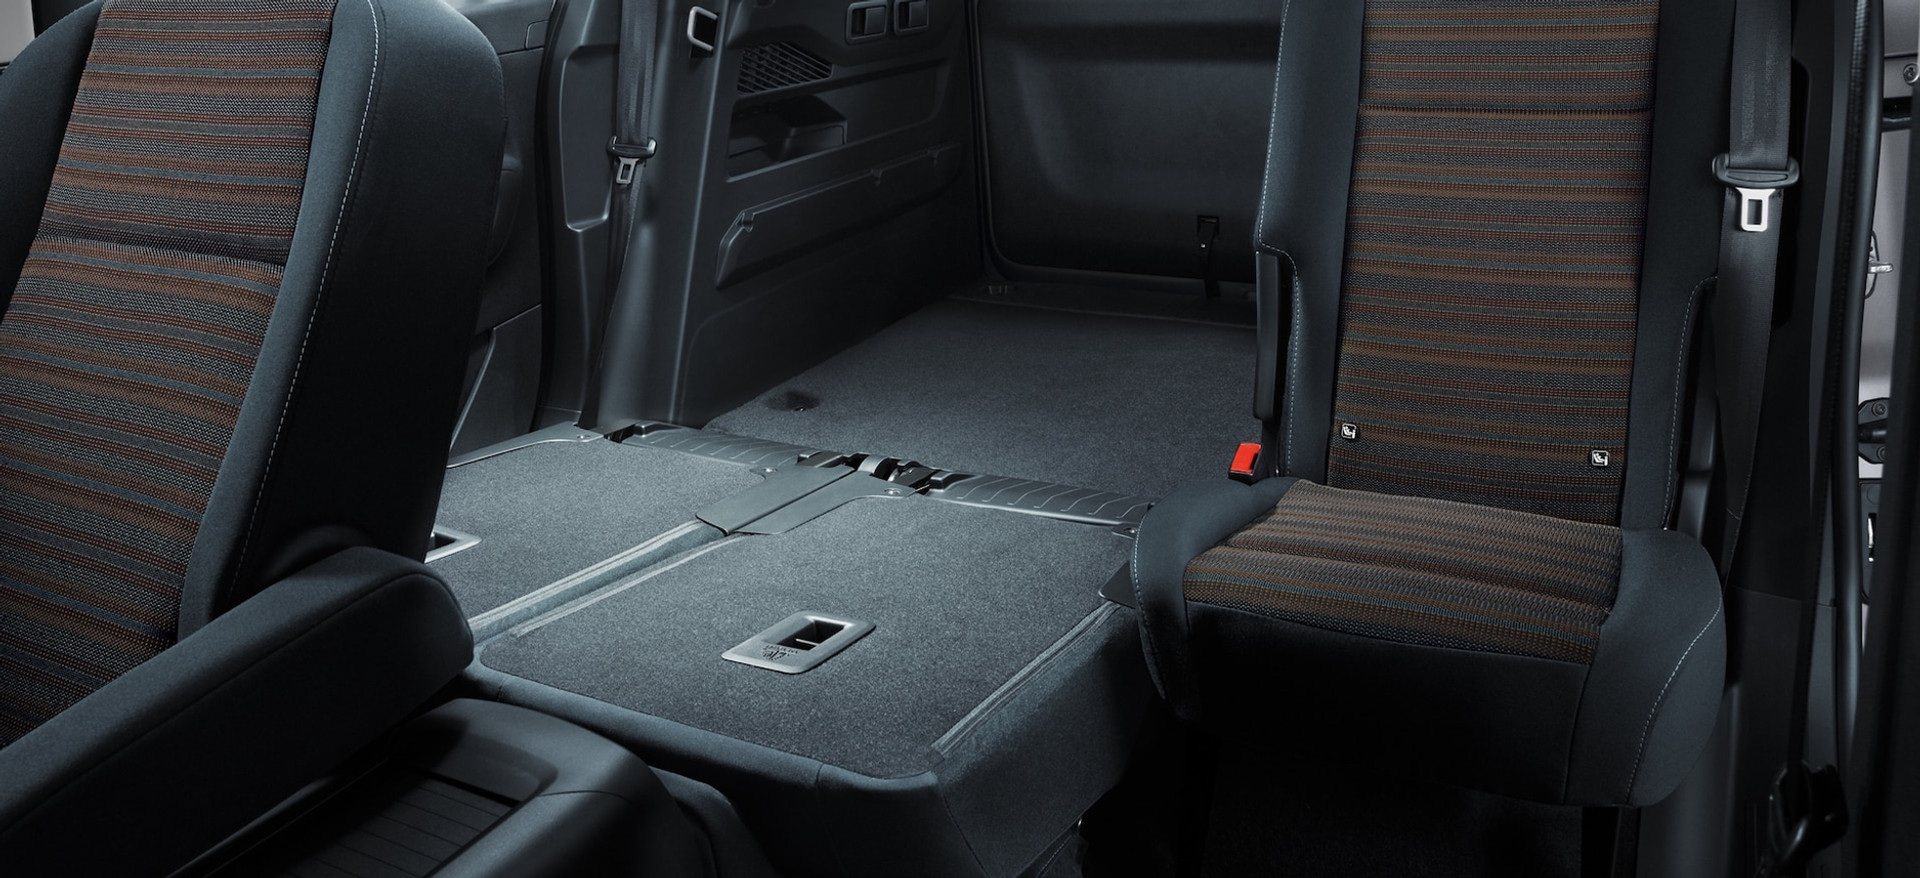 opel_combo_life_rear_split_seats_21x9_cm